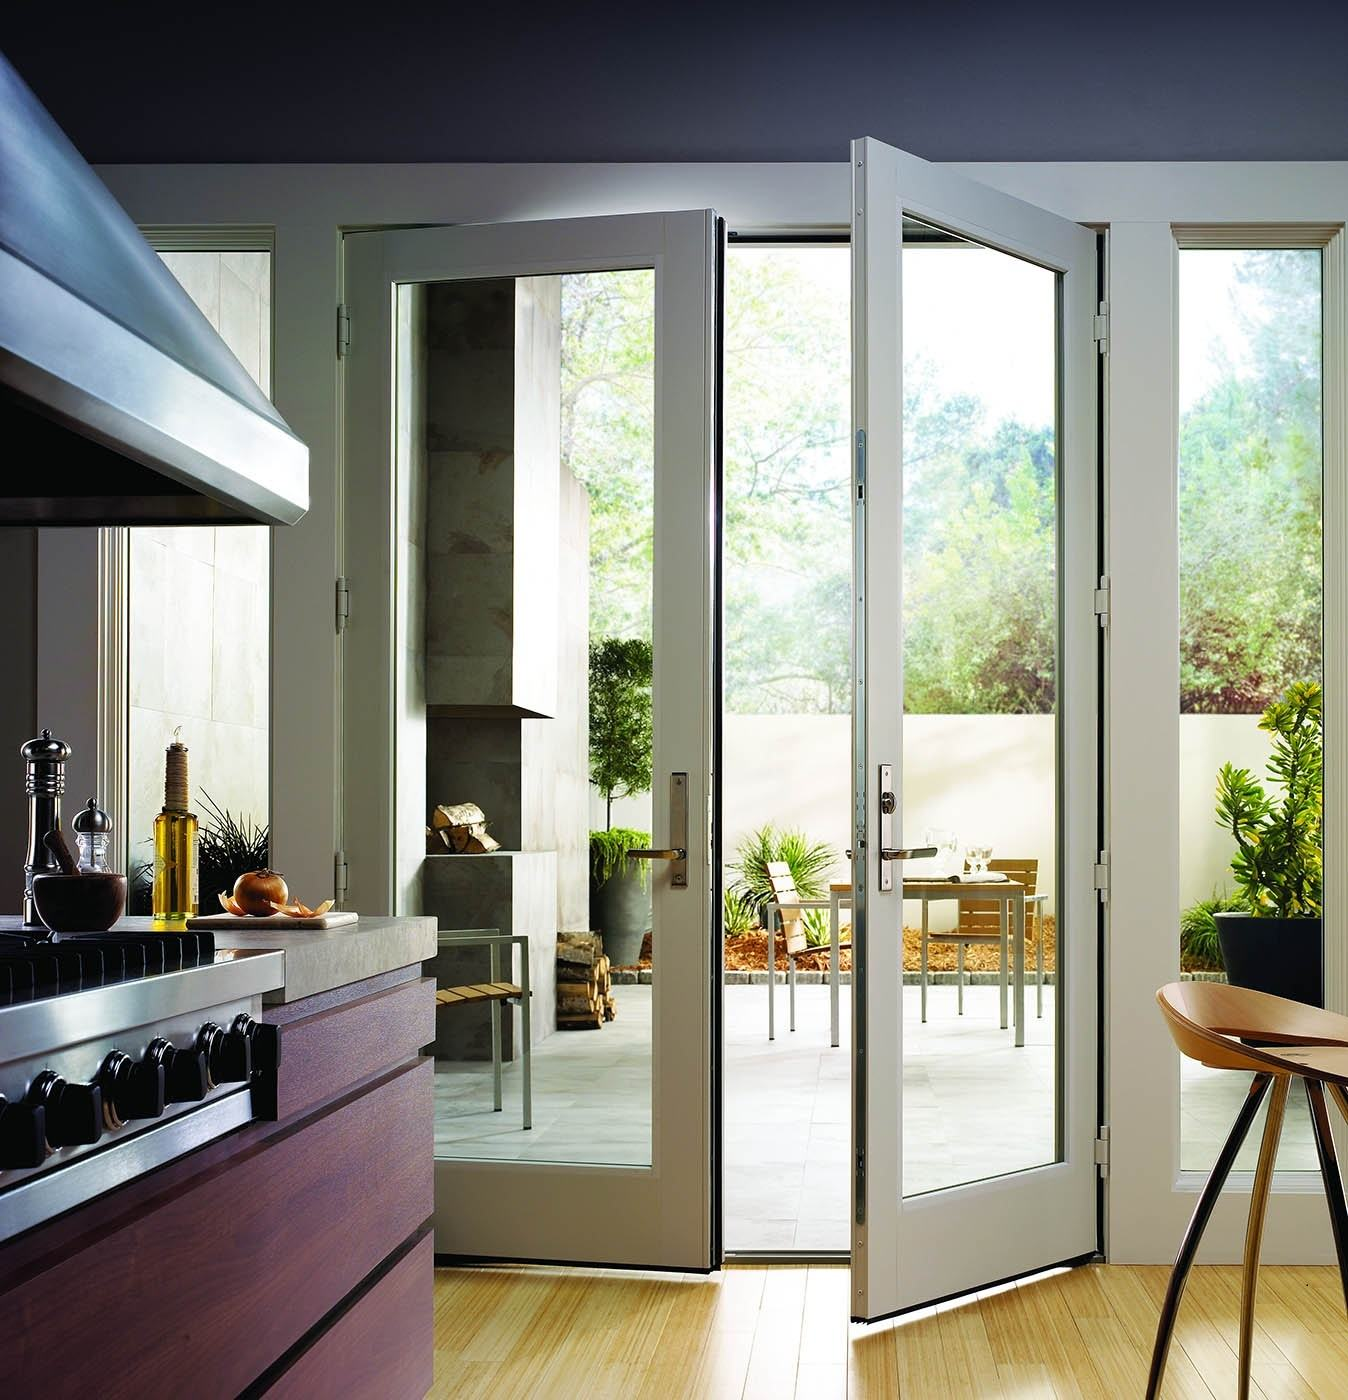 We Have Been Serving The Area For Years, So We Know How To Choose The Best  Doors To Compliment Your Home. Our Qualified Employees And Installers Work  Hard ...